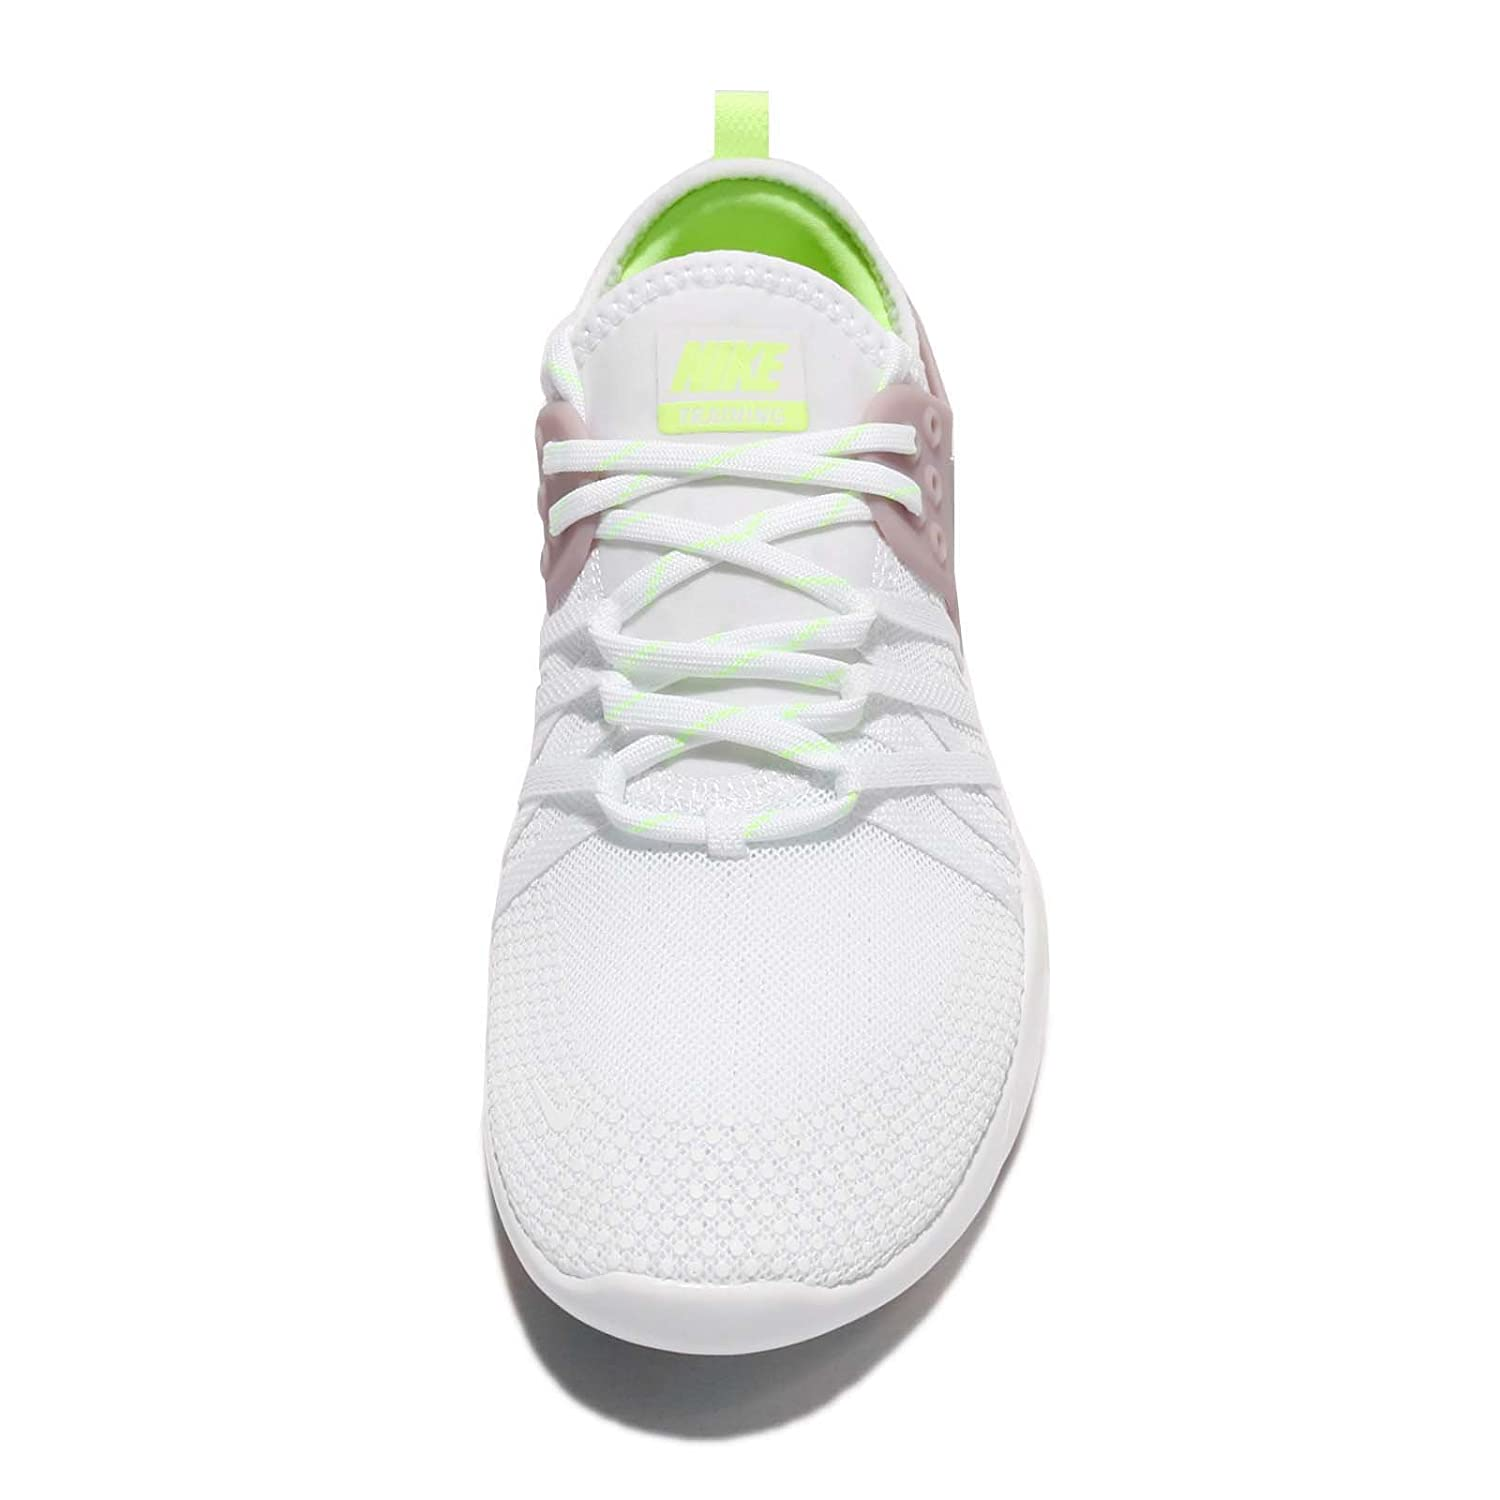 NIKE Free Tr 7 Womens Cross Training Shoes Silver-elemental B071VZN7N6 9 B(M) US|White/Metallic Silver-elemental Shoes Rose 5f2c95